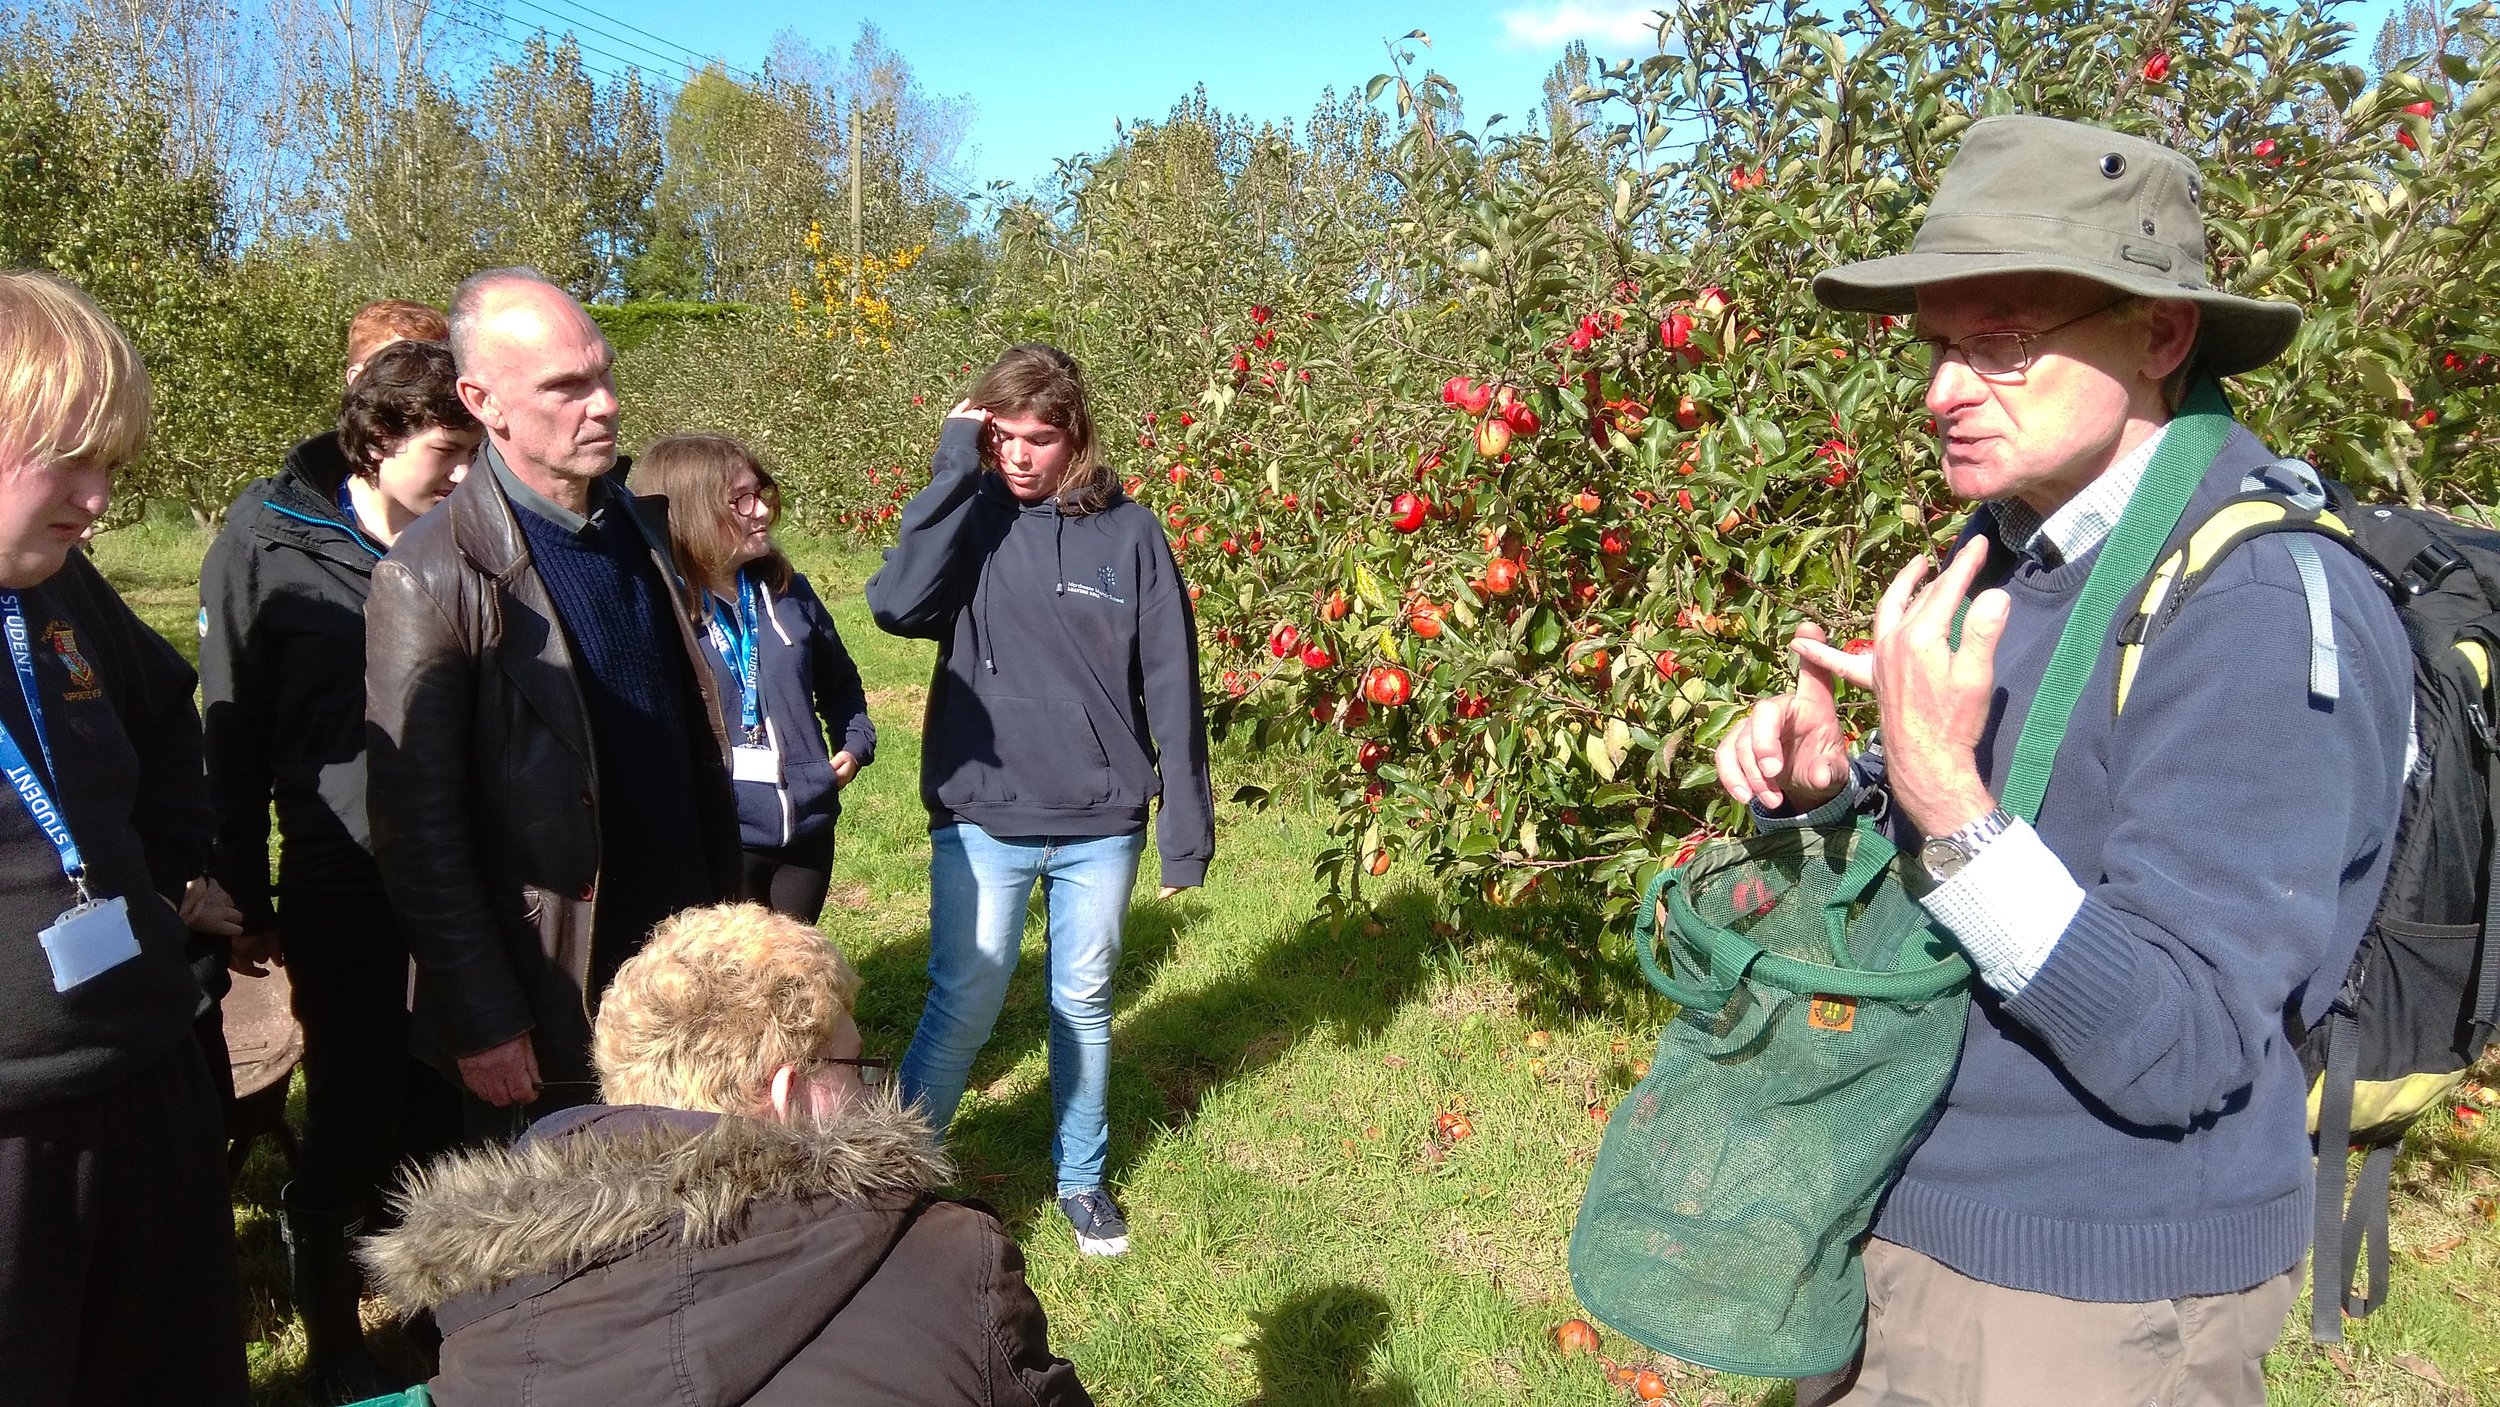 Peter May showing the group how to pick apples